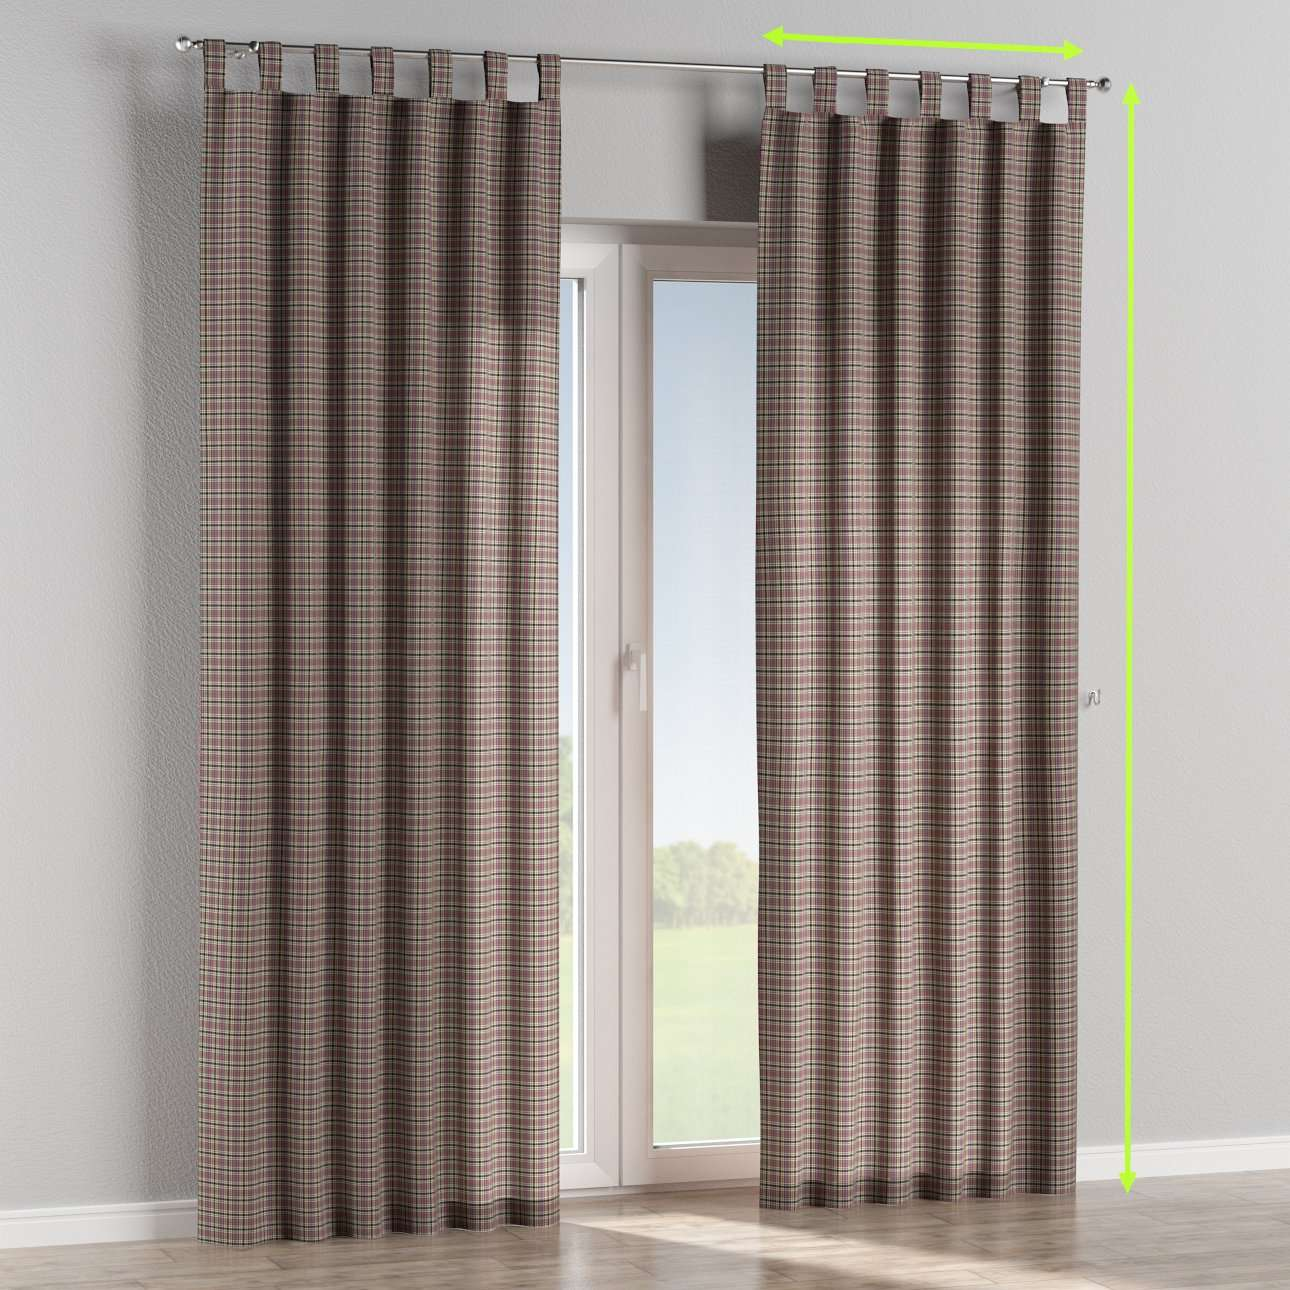 Tab top lined curtains in collection Bristol, fabric: 126-32